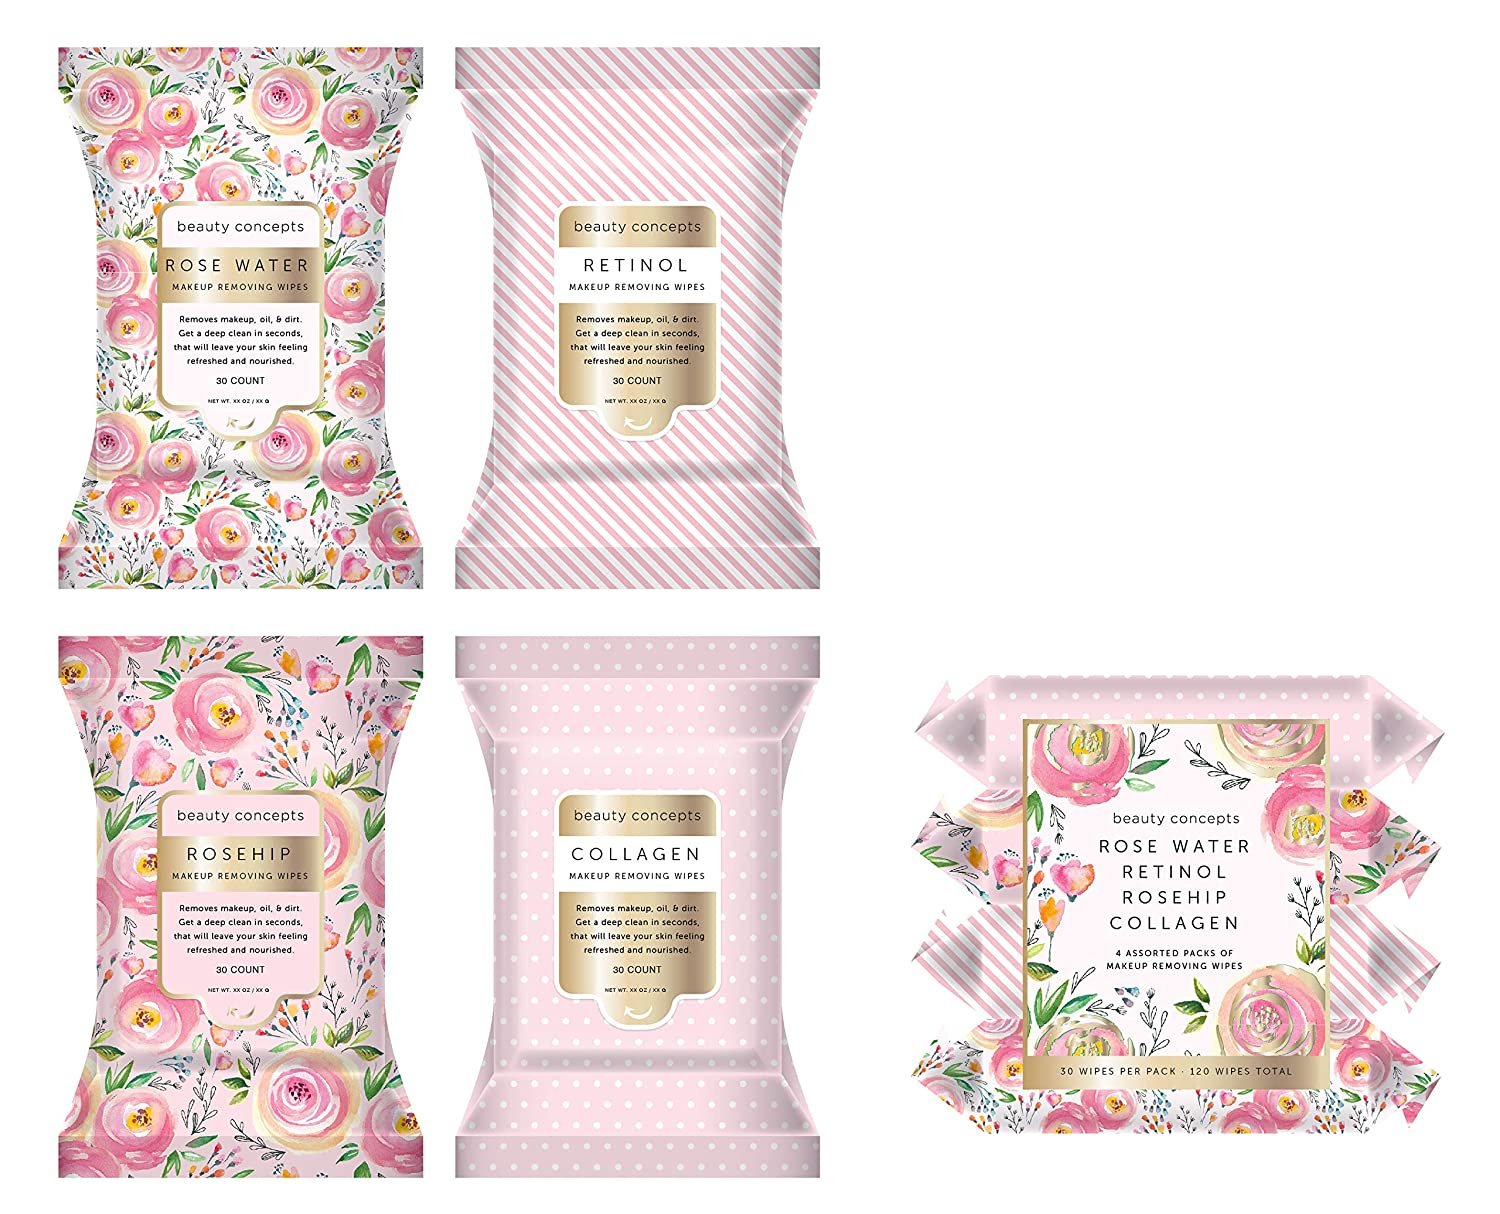 Beauty Concepts Facial Wipe Set- 4 Packs of Face Wipes, Makeup Removing Wipes with Rose Water, Retinol, Rosehip, and Collagen, Pink Floral Package : Beauty & Personal Care